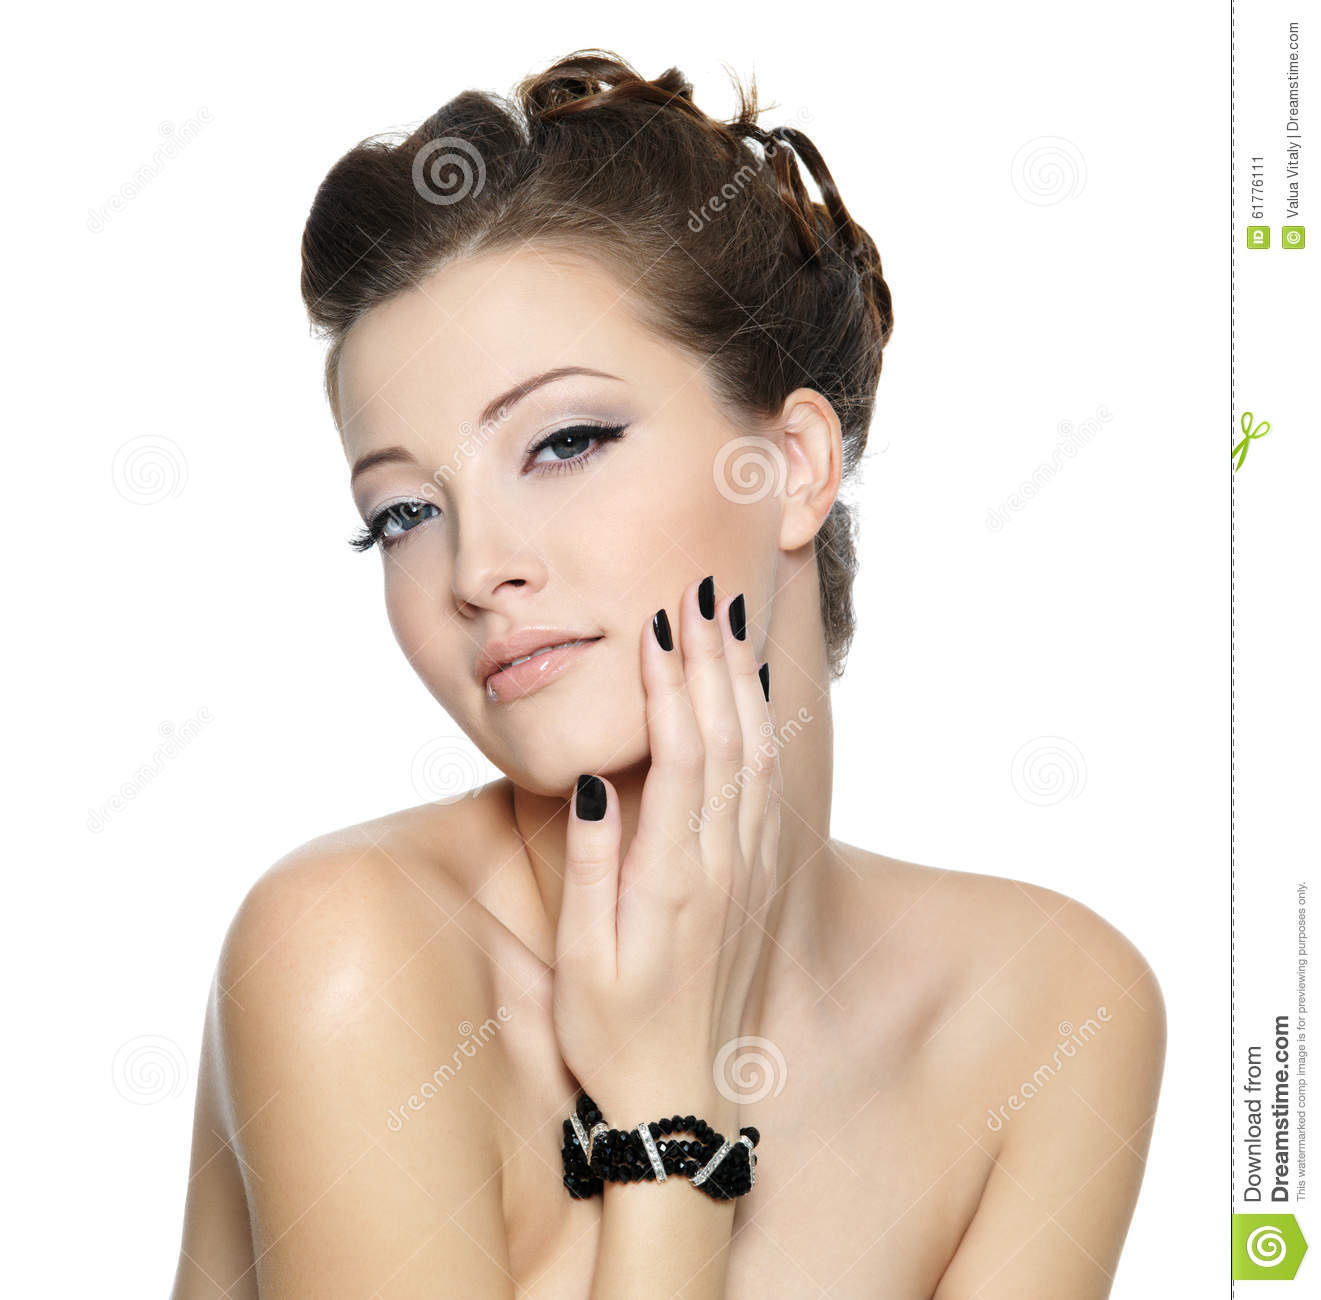 beautiful glamour woman with black nails stock photo - image: 61776111